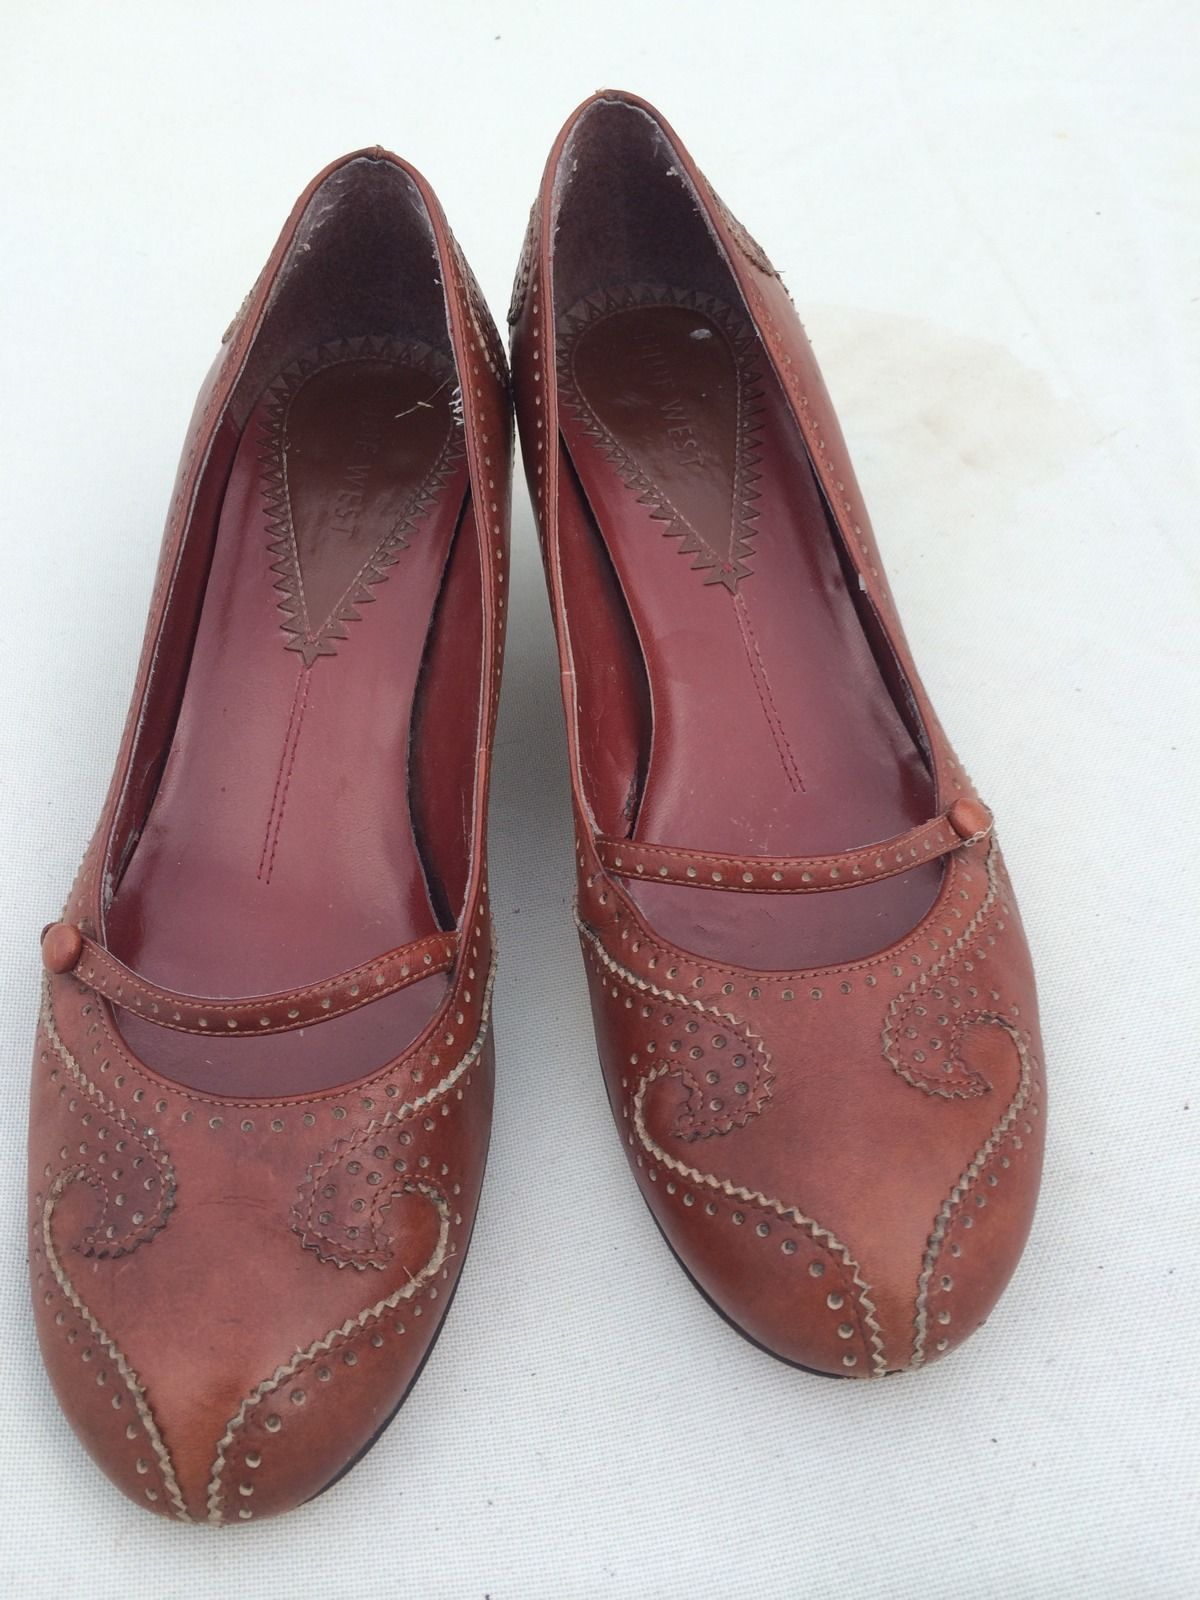 Women's Brown Leather Nine West Mary Jane Heels Size 8.5